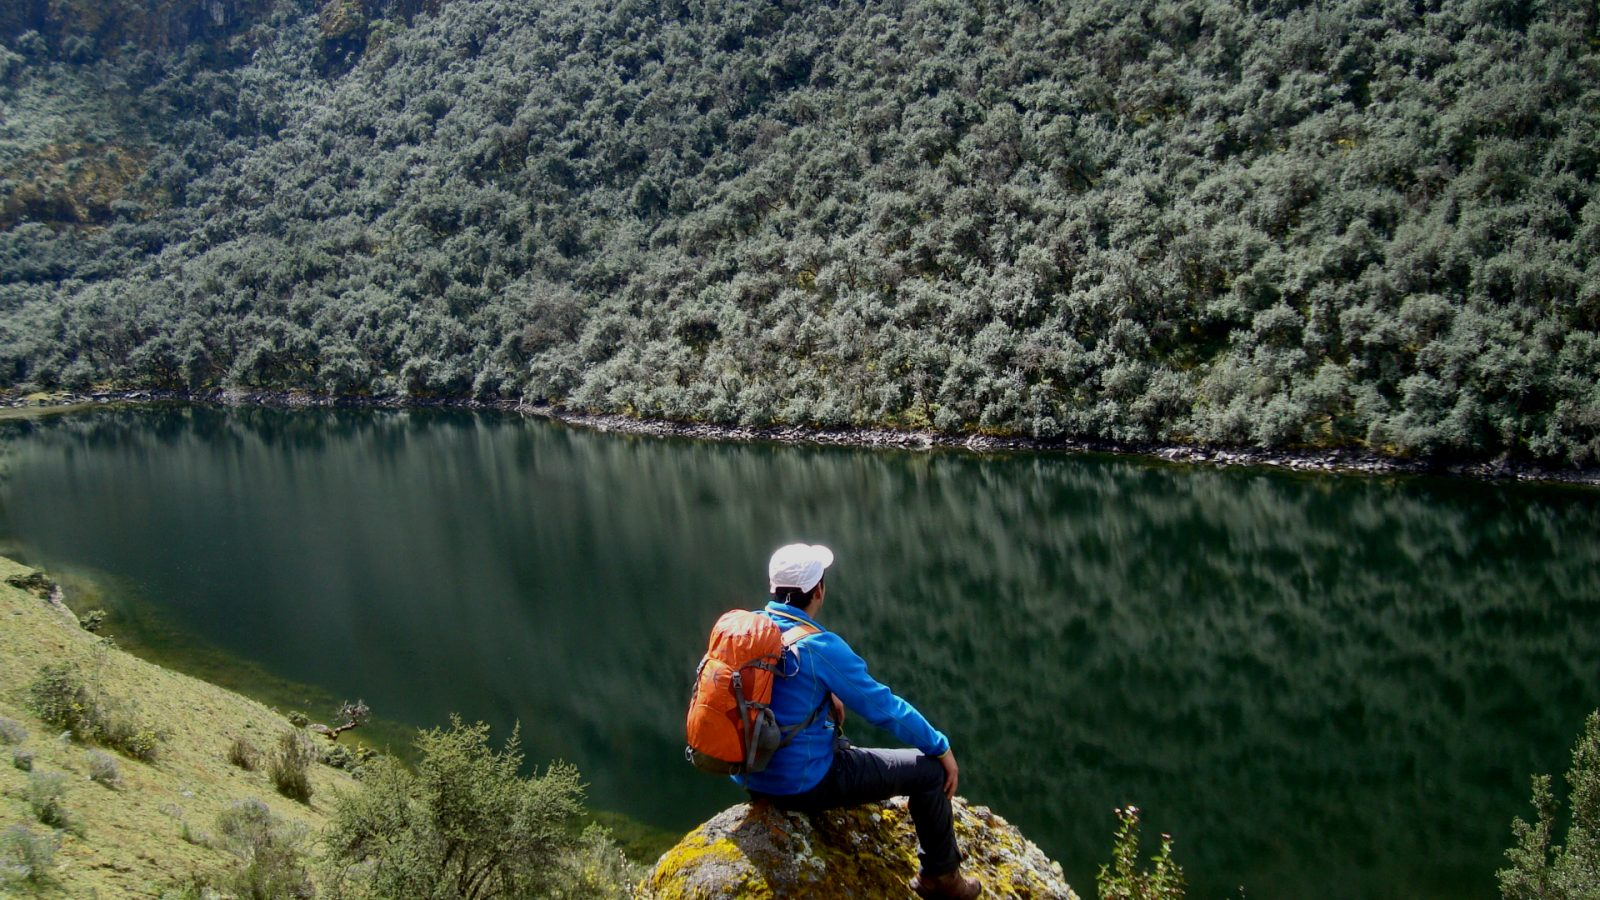 The Yanacocha lake trekking by inka trail trek